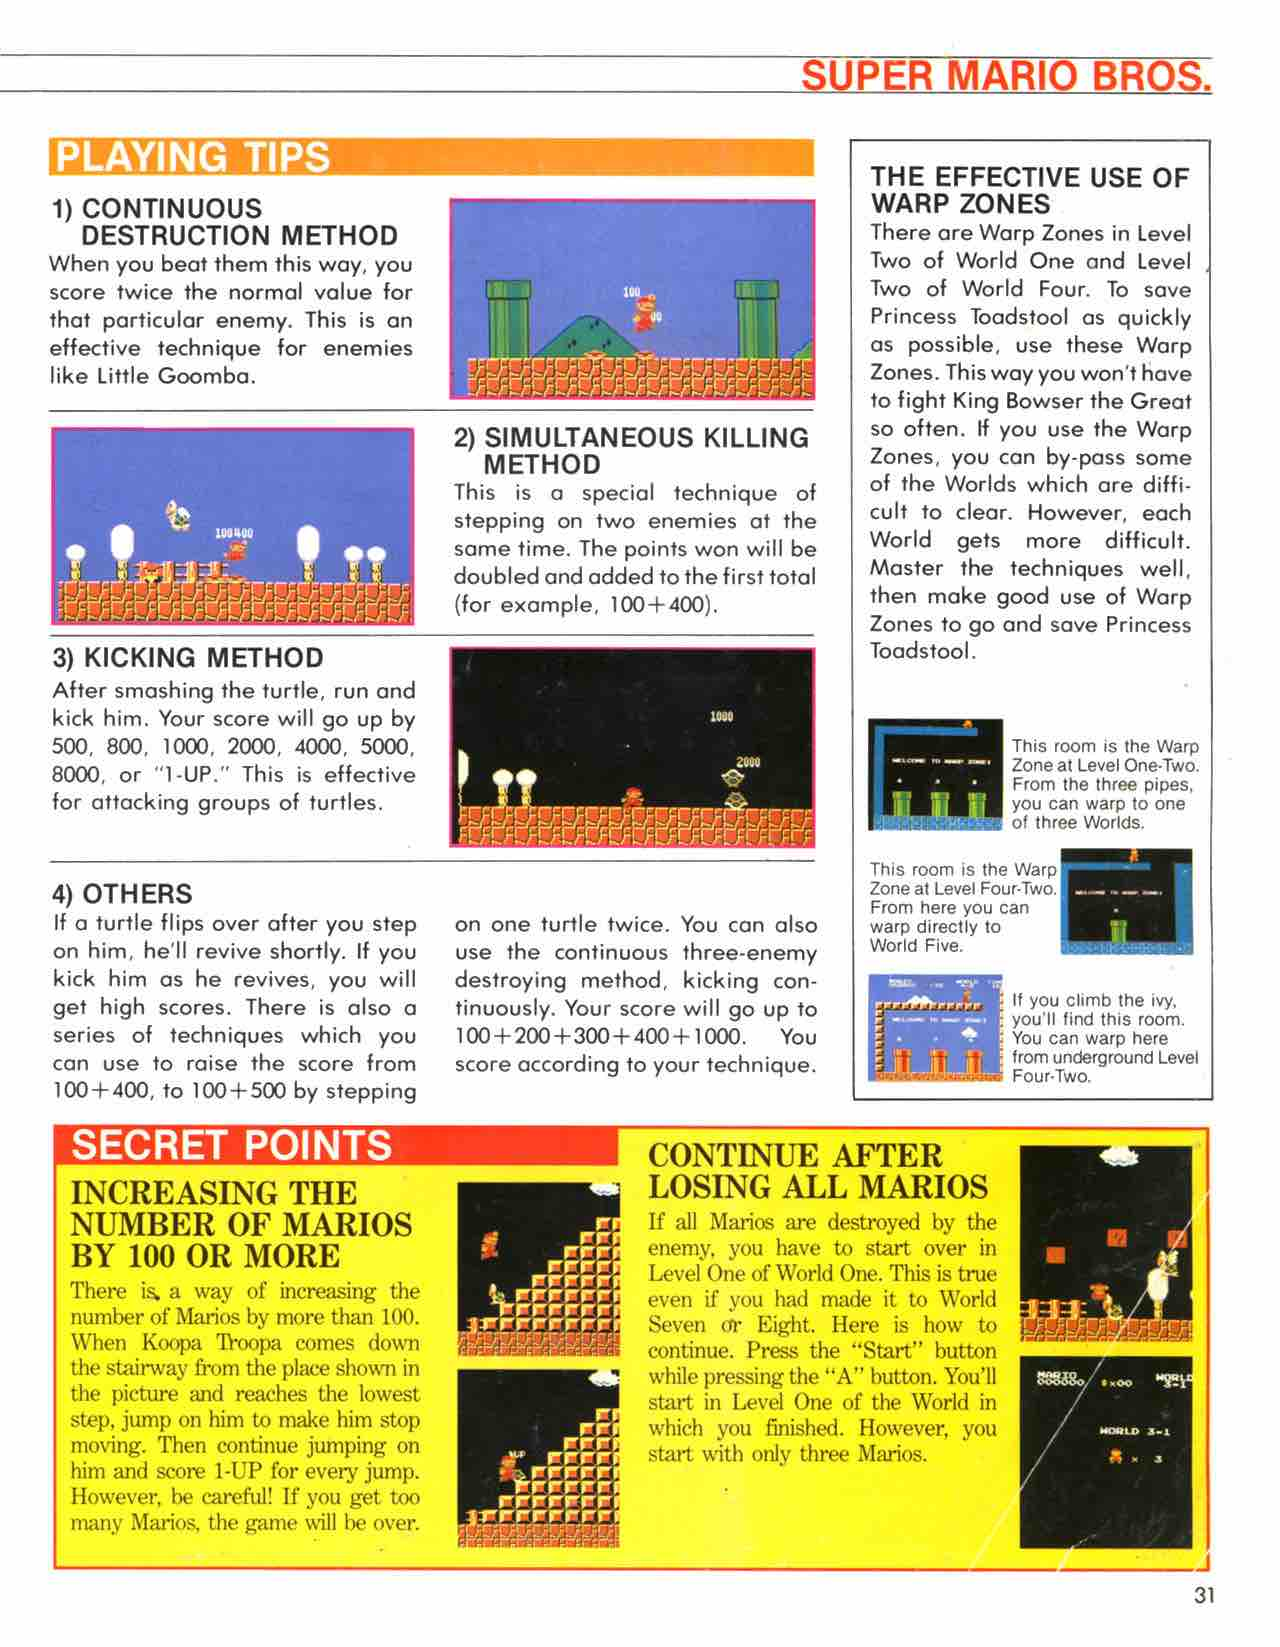 Official Nintendo Player's Guide Pg 31